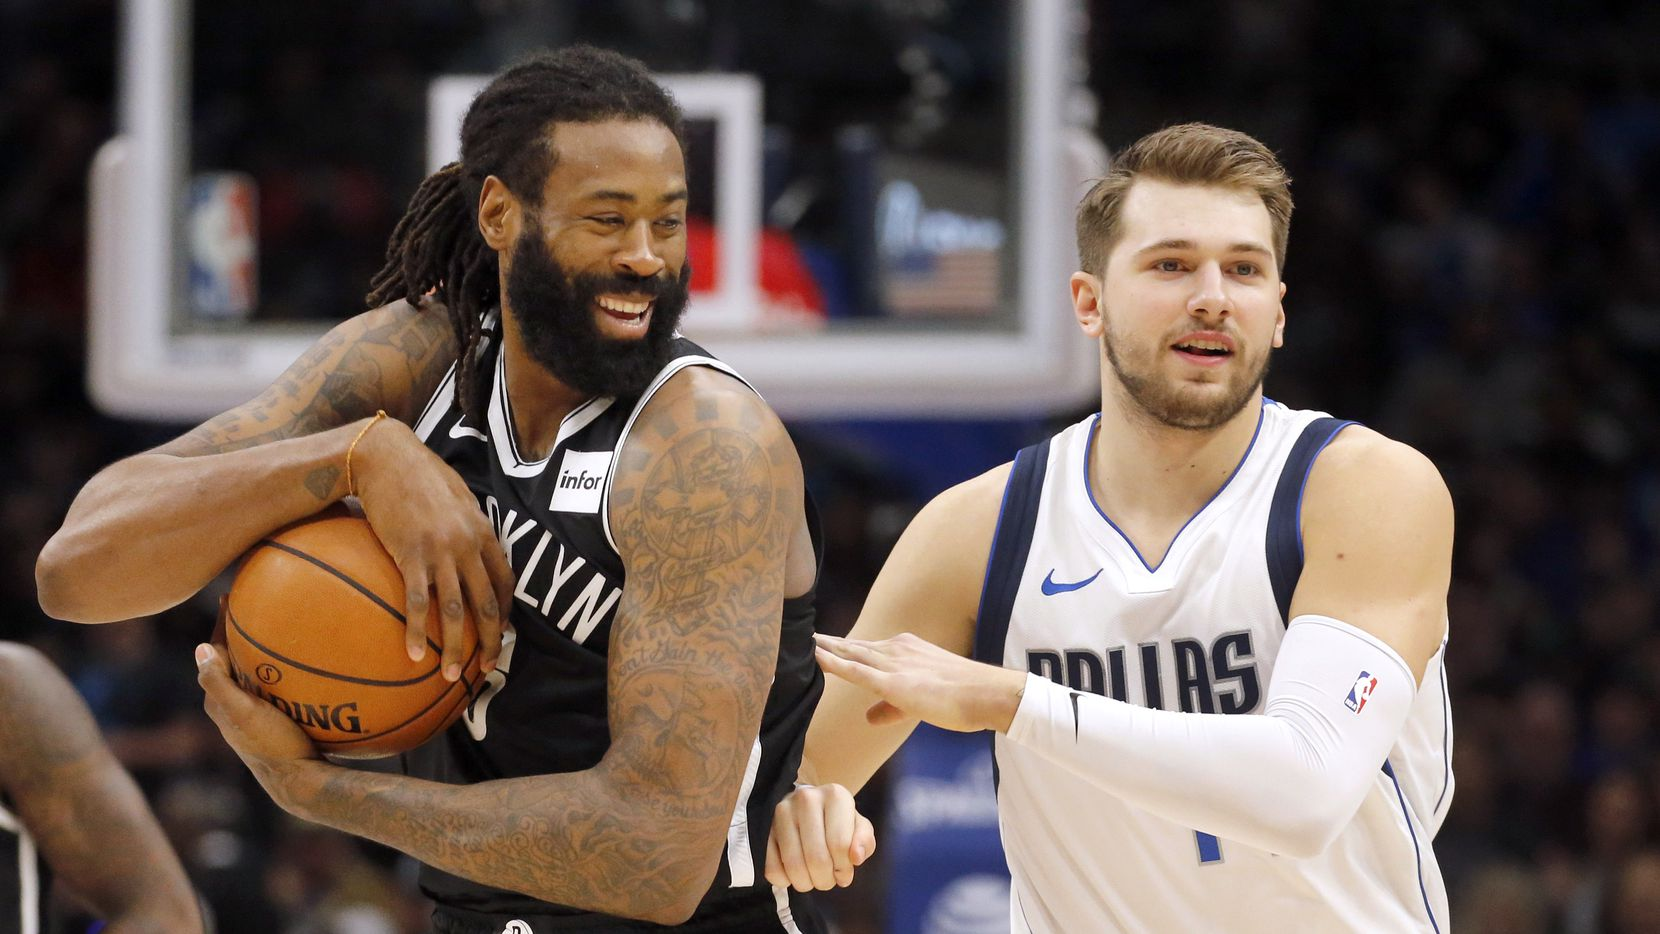 Dallas Mavericks forward Luka Doncic (77) tried to steal the ball from former Maverick and Brooklyn Nets center DeAndre Jordan (6) before tipping off their game at the American Airlines Center in Dallas, Thursday, January 2, 2020.